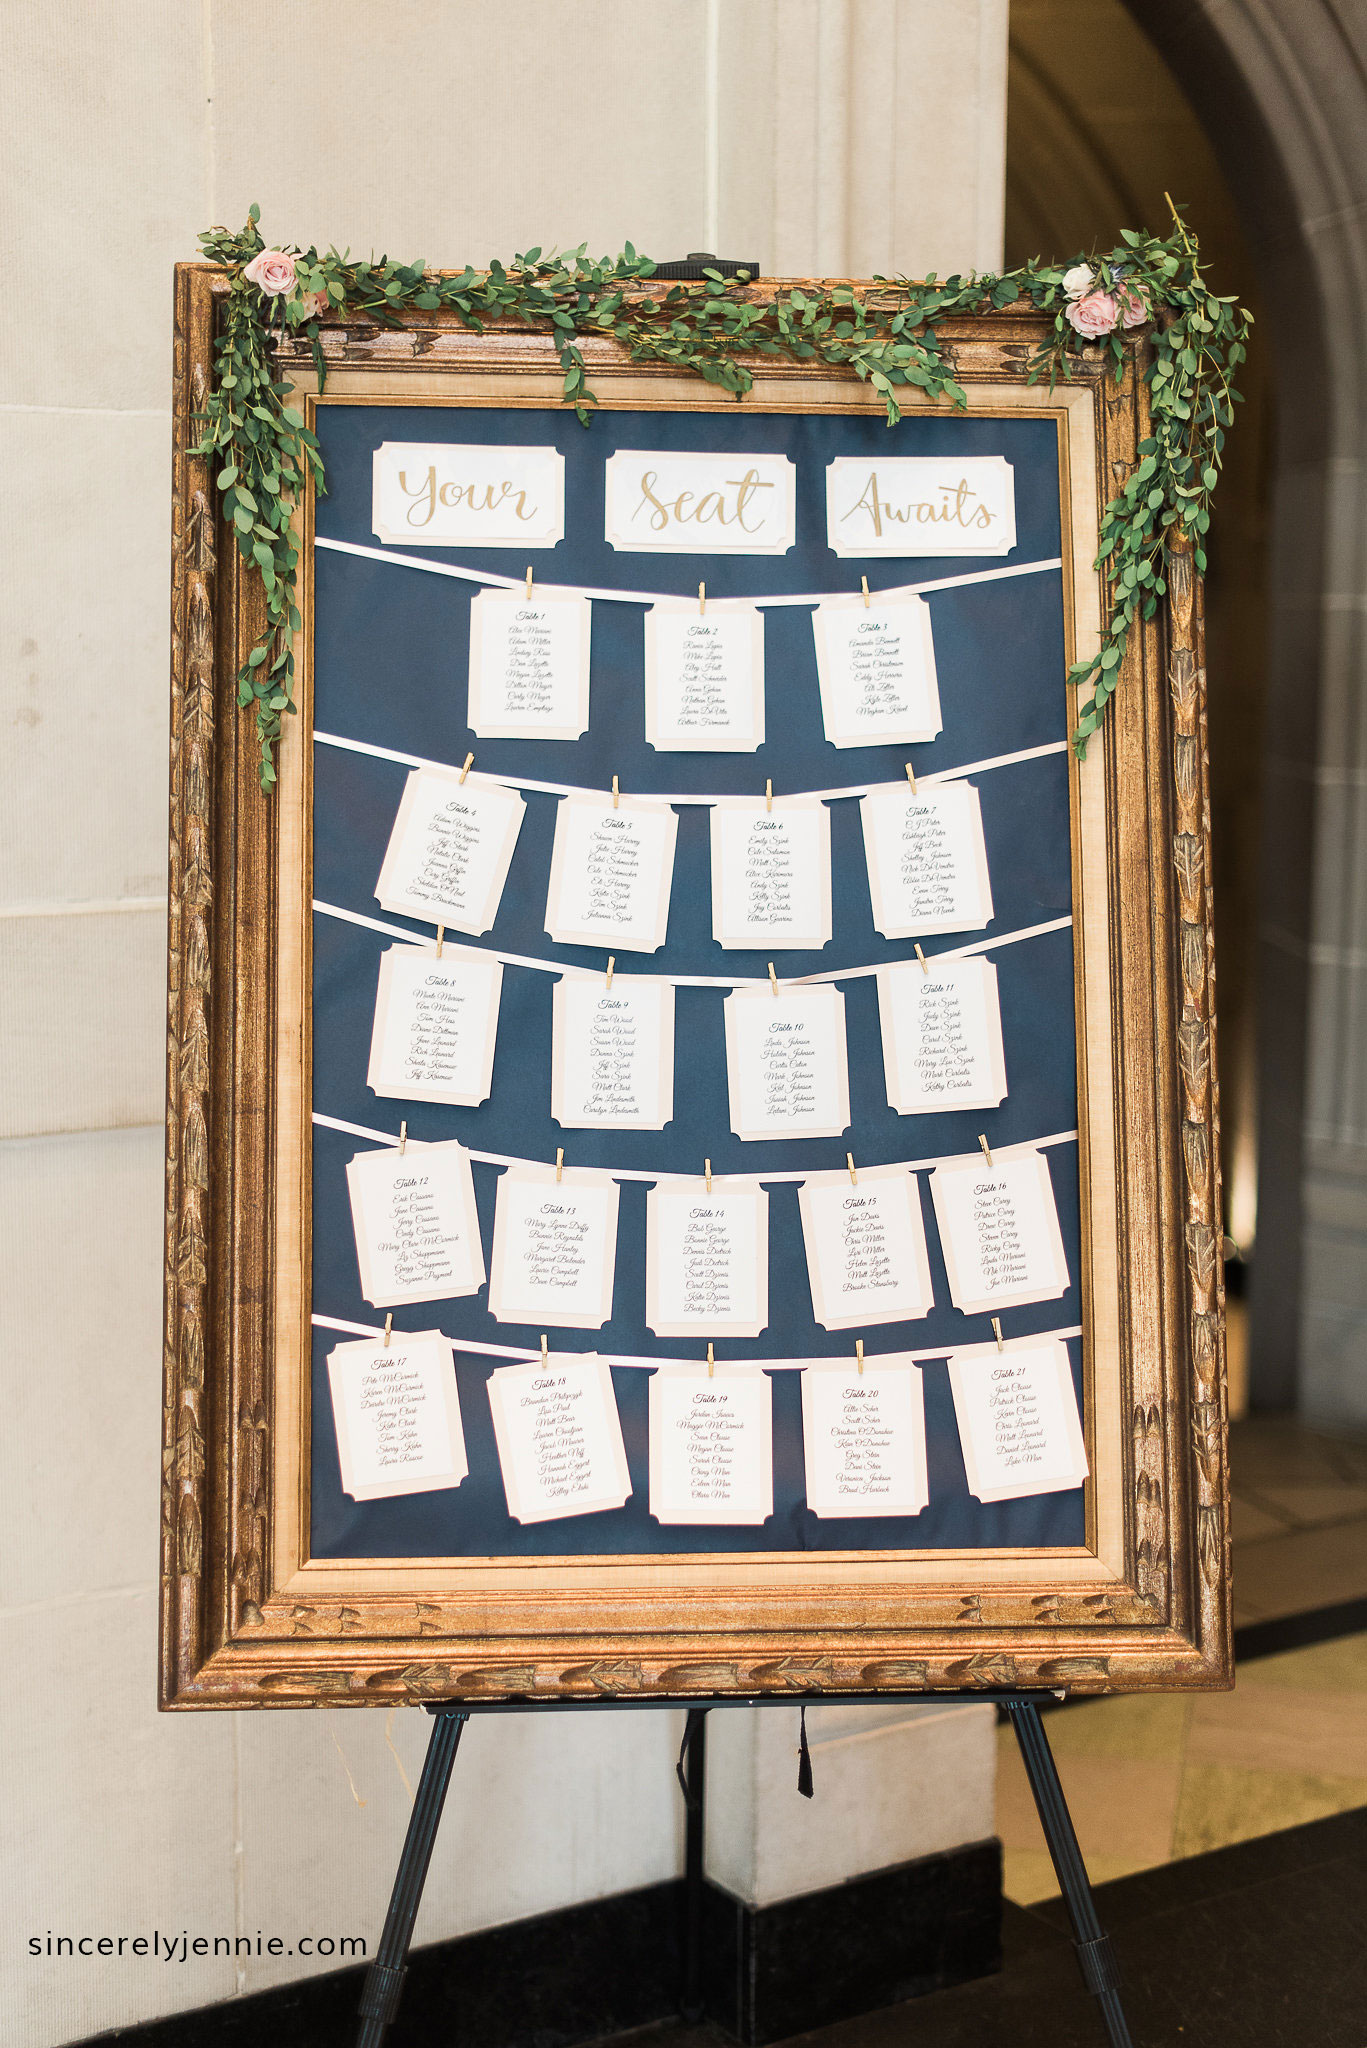 Sincerely Jennie Diy Wedding Seating Chart Instructions Supplies